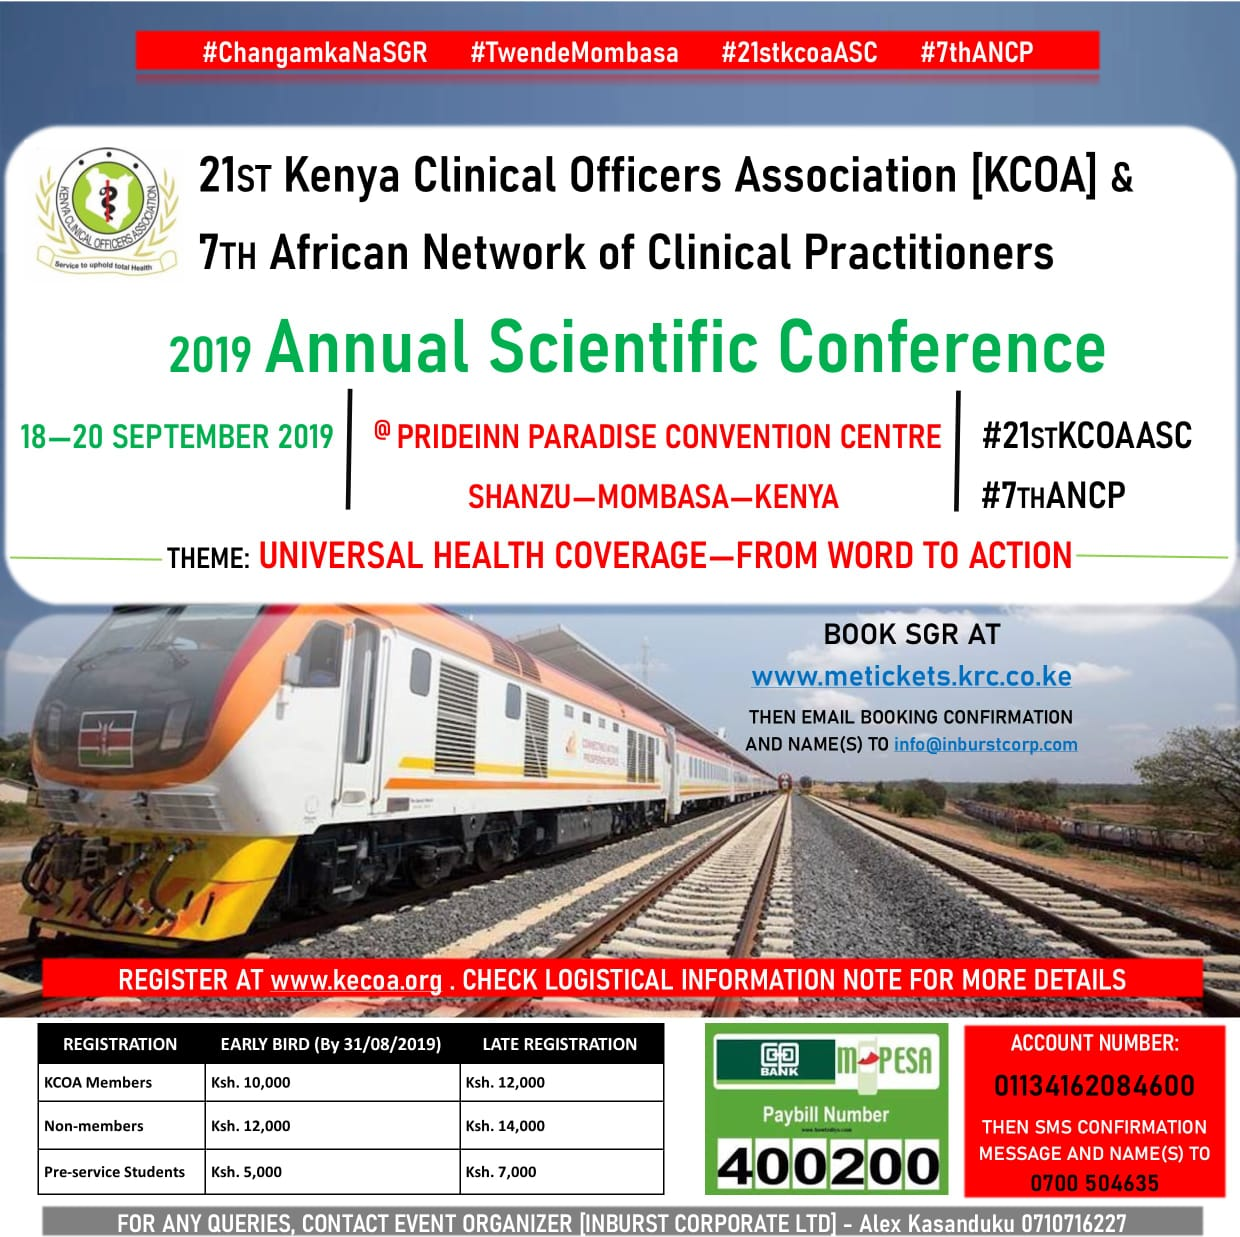 Home - Kenya Clinical Officers Association